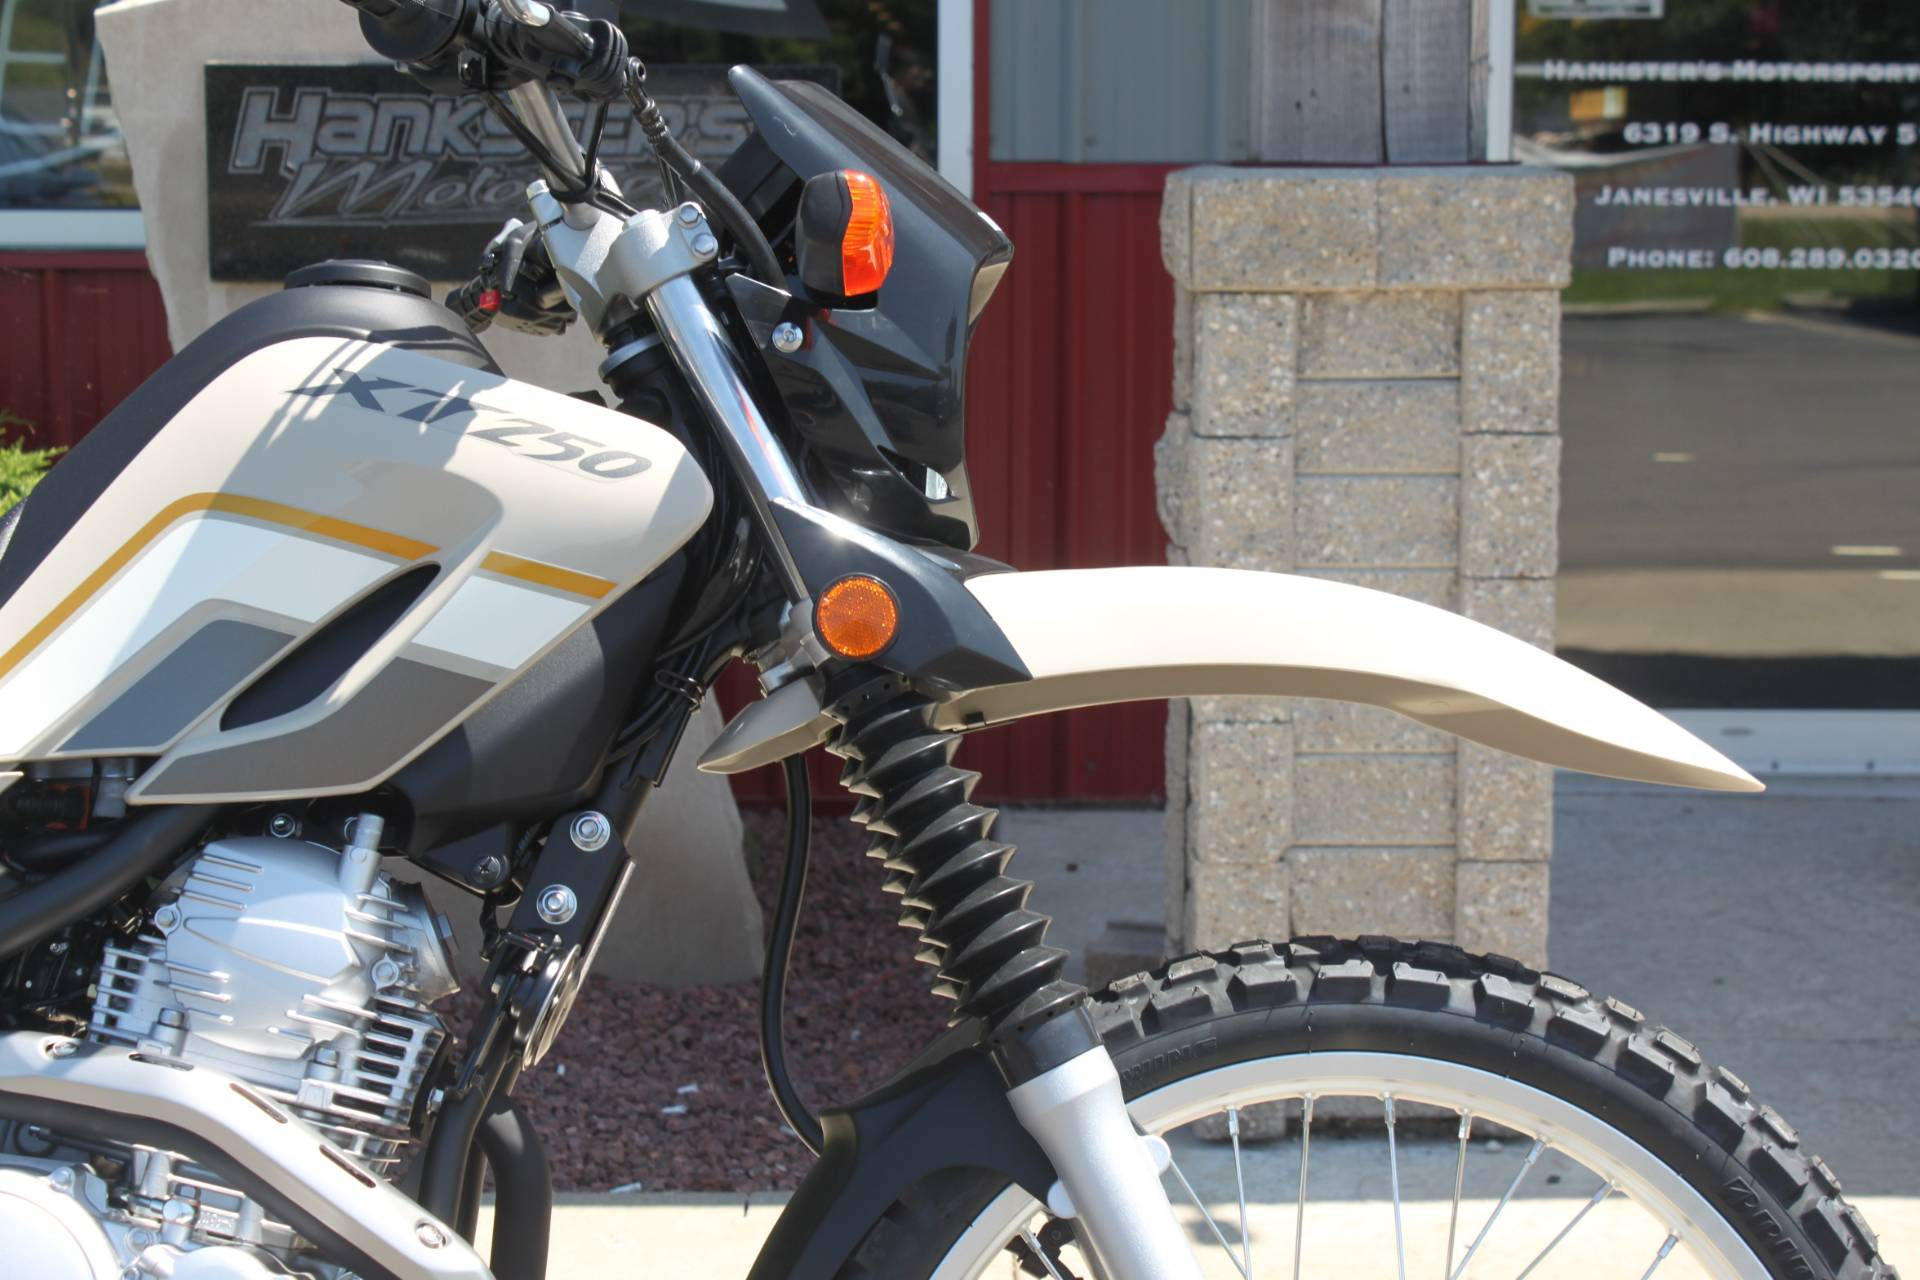 2020 Yamaha XT250 in Janesville, Wisconsin - Photo 15